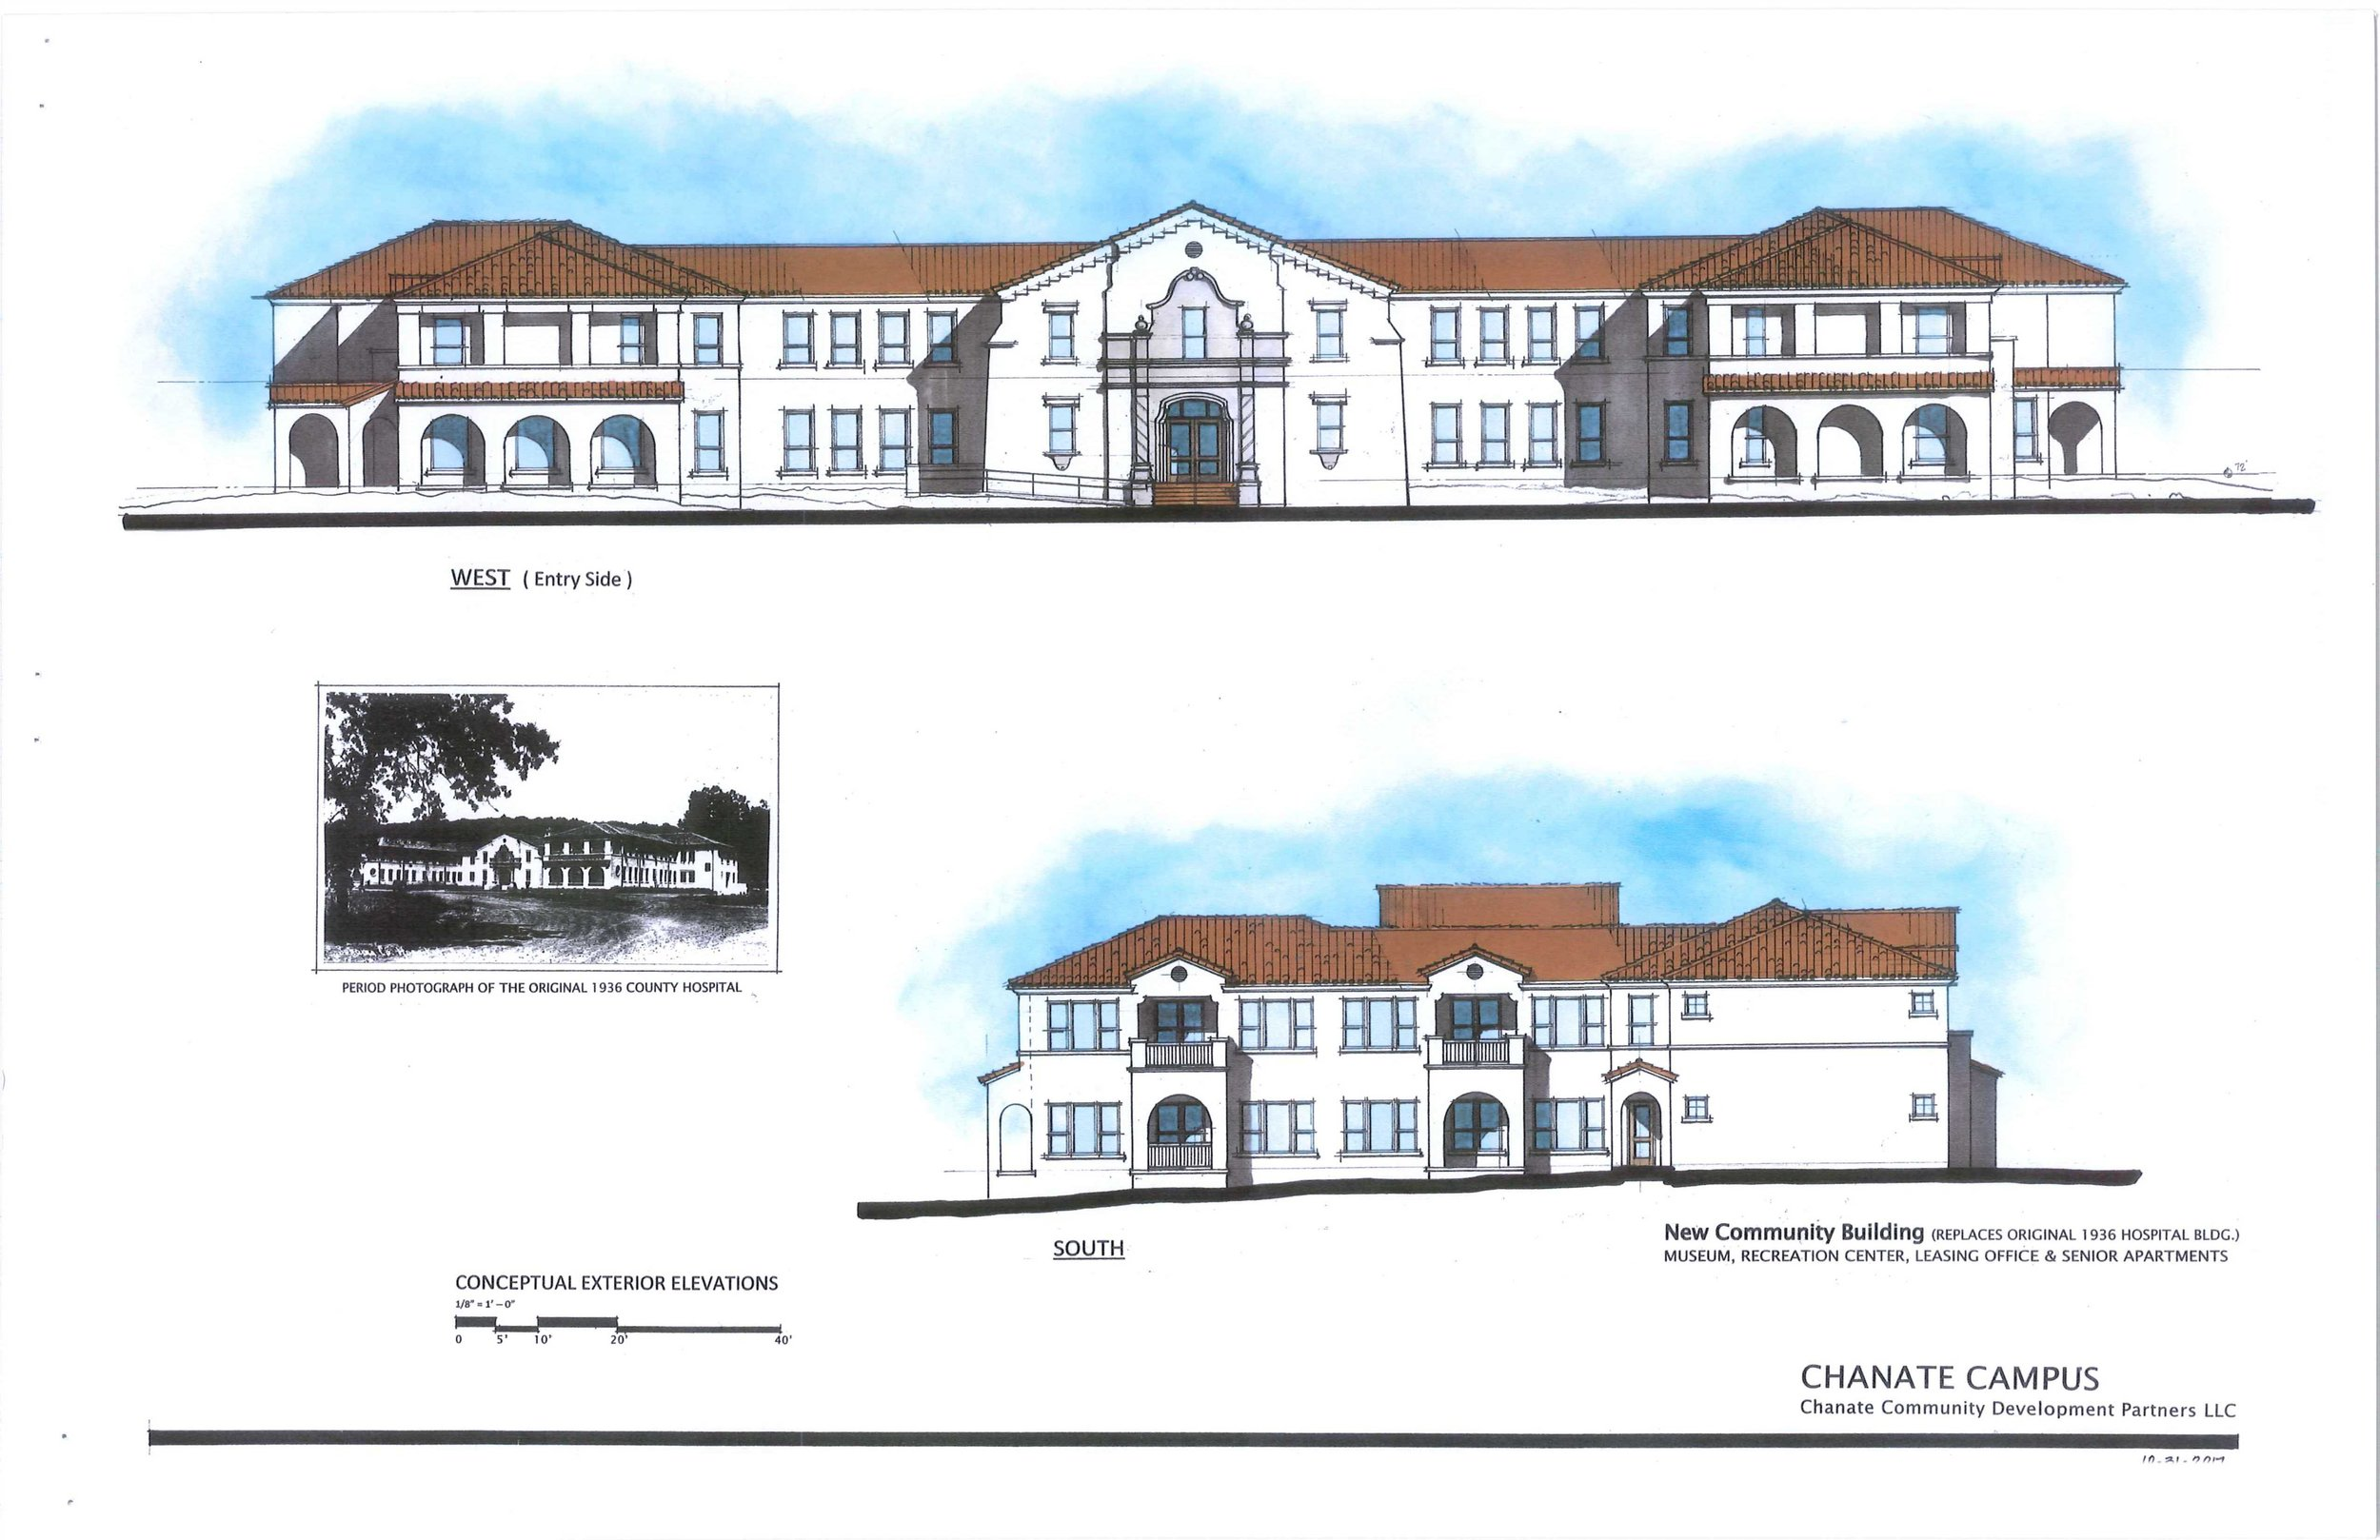 This is the conceptual elevation of the building that will replace the original hospital. It appears to preserve the main entrance façade. Most of the main floor will be recreational rooms. There will be rental units on part of the first floor and all of the second floor.